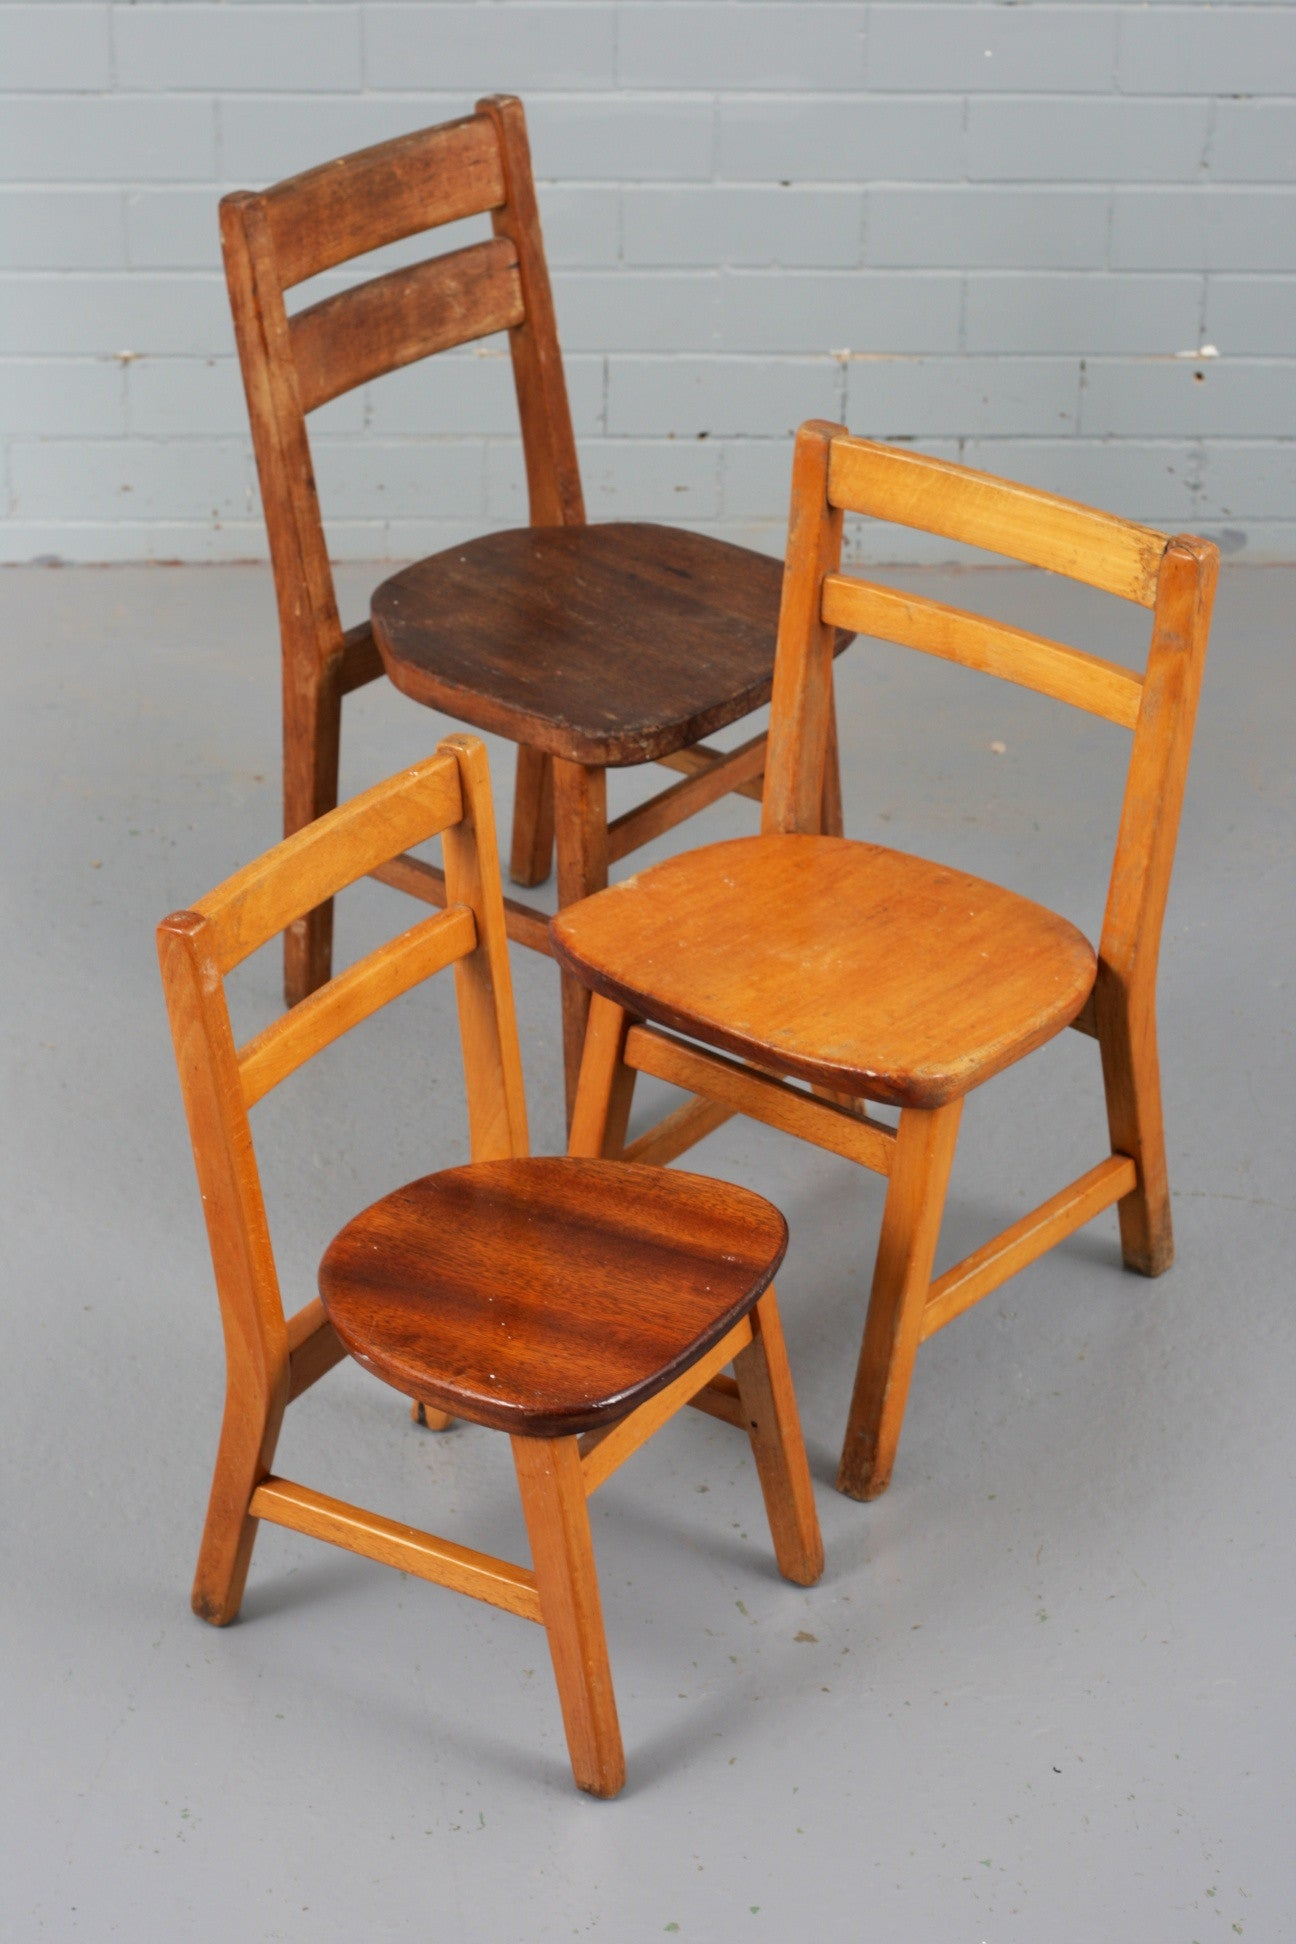 Vintage wooden children's chairs available to buy at Industrious Interiors, an online vintage furniture and homeware store based in Nottingham, England.